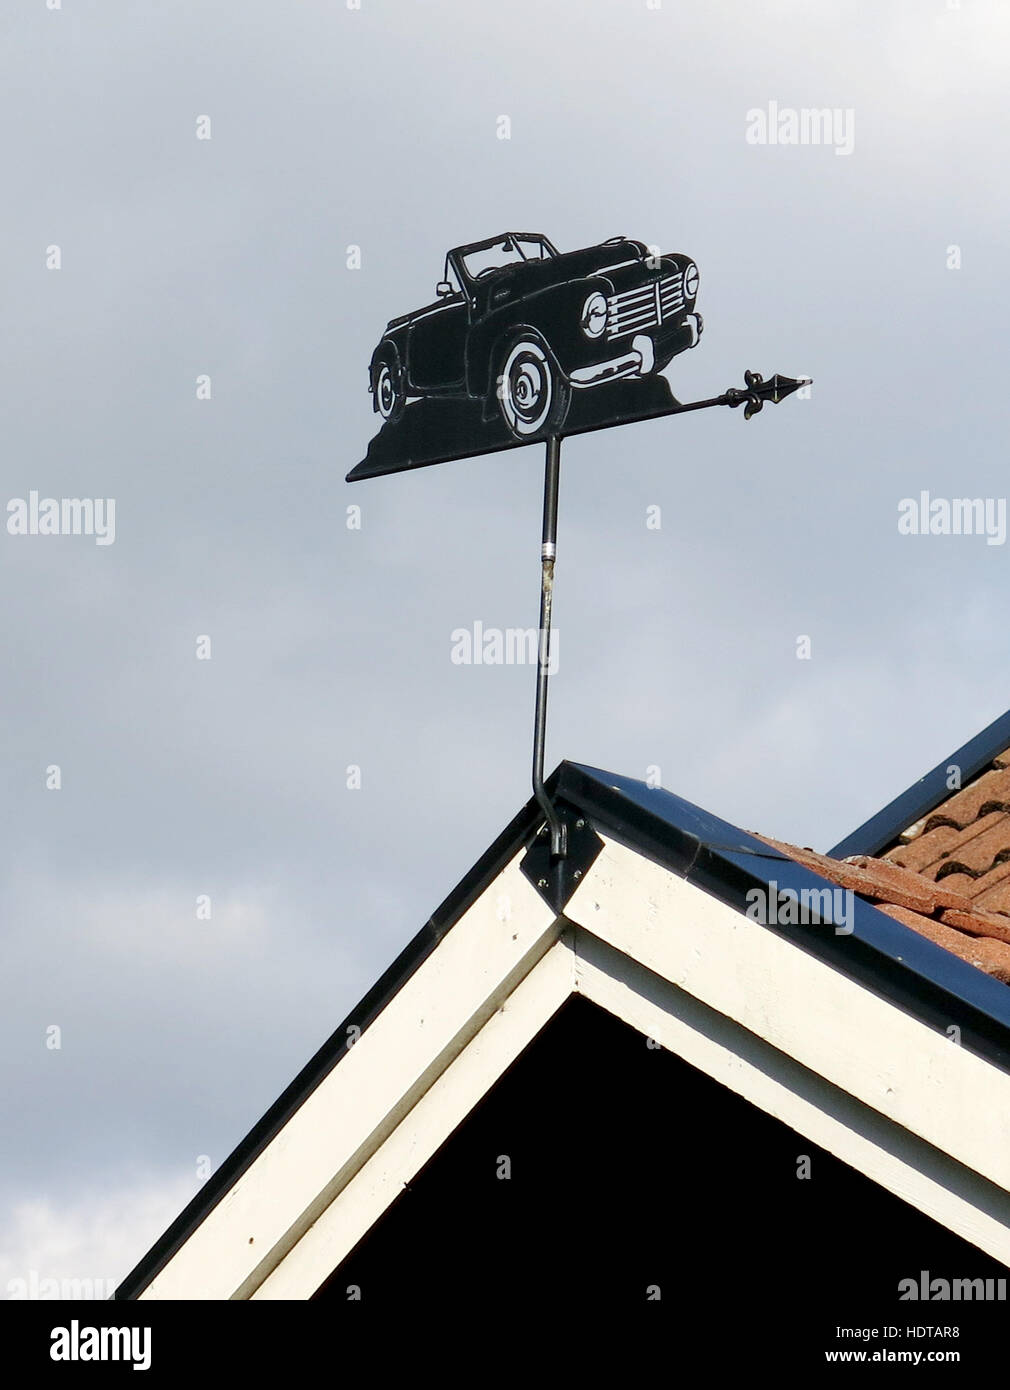 WEATHER VANE as Volvo Convertible 2015 Stock Photo Royalty Free